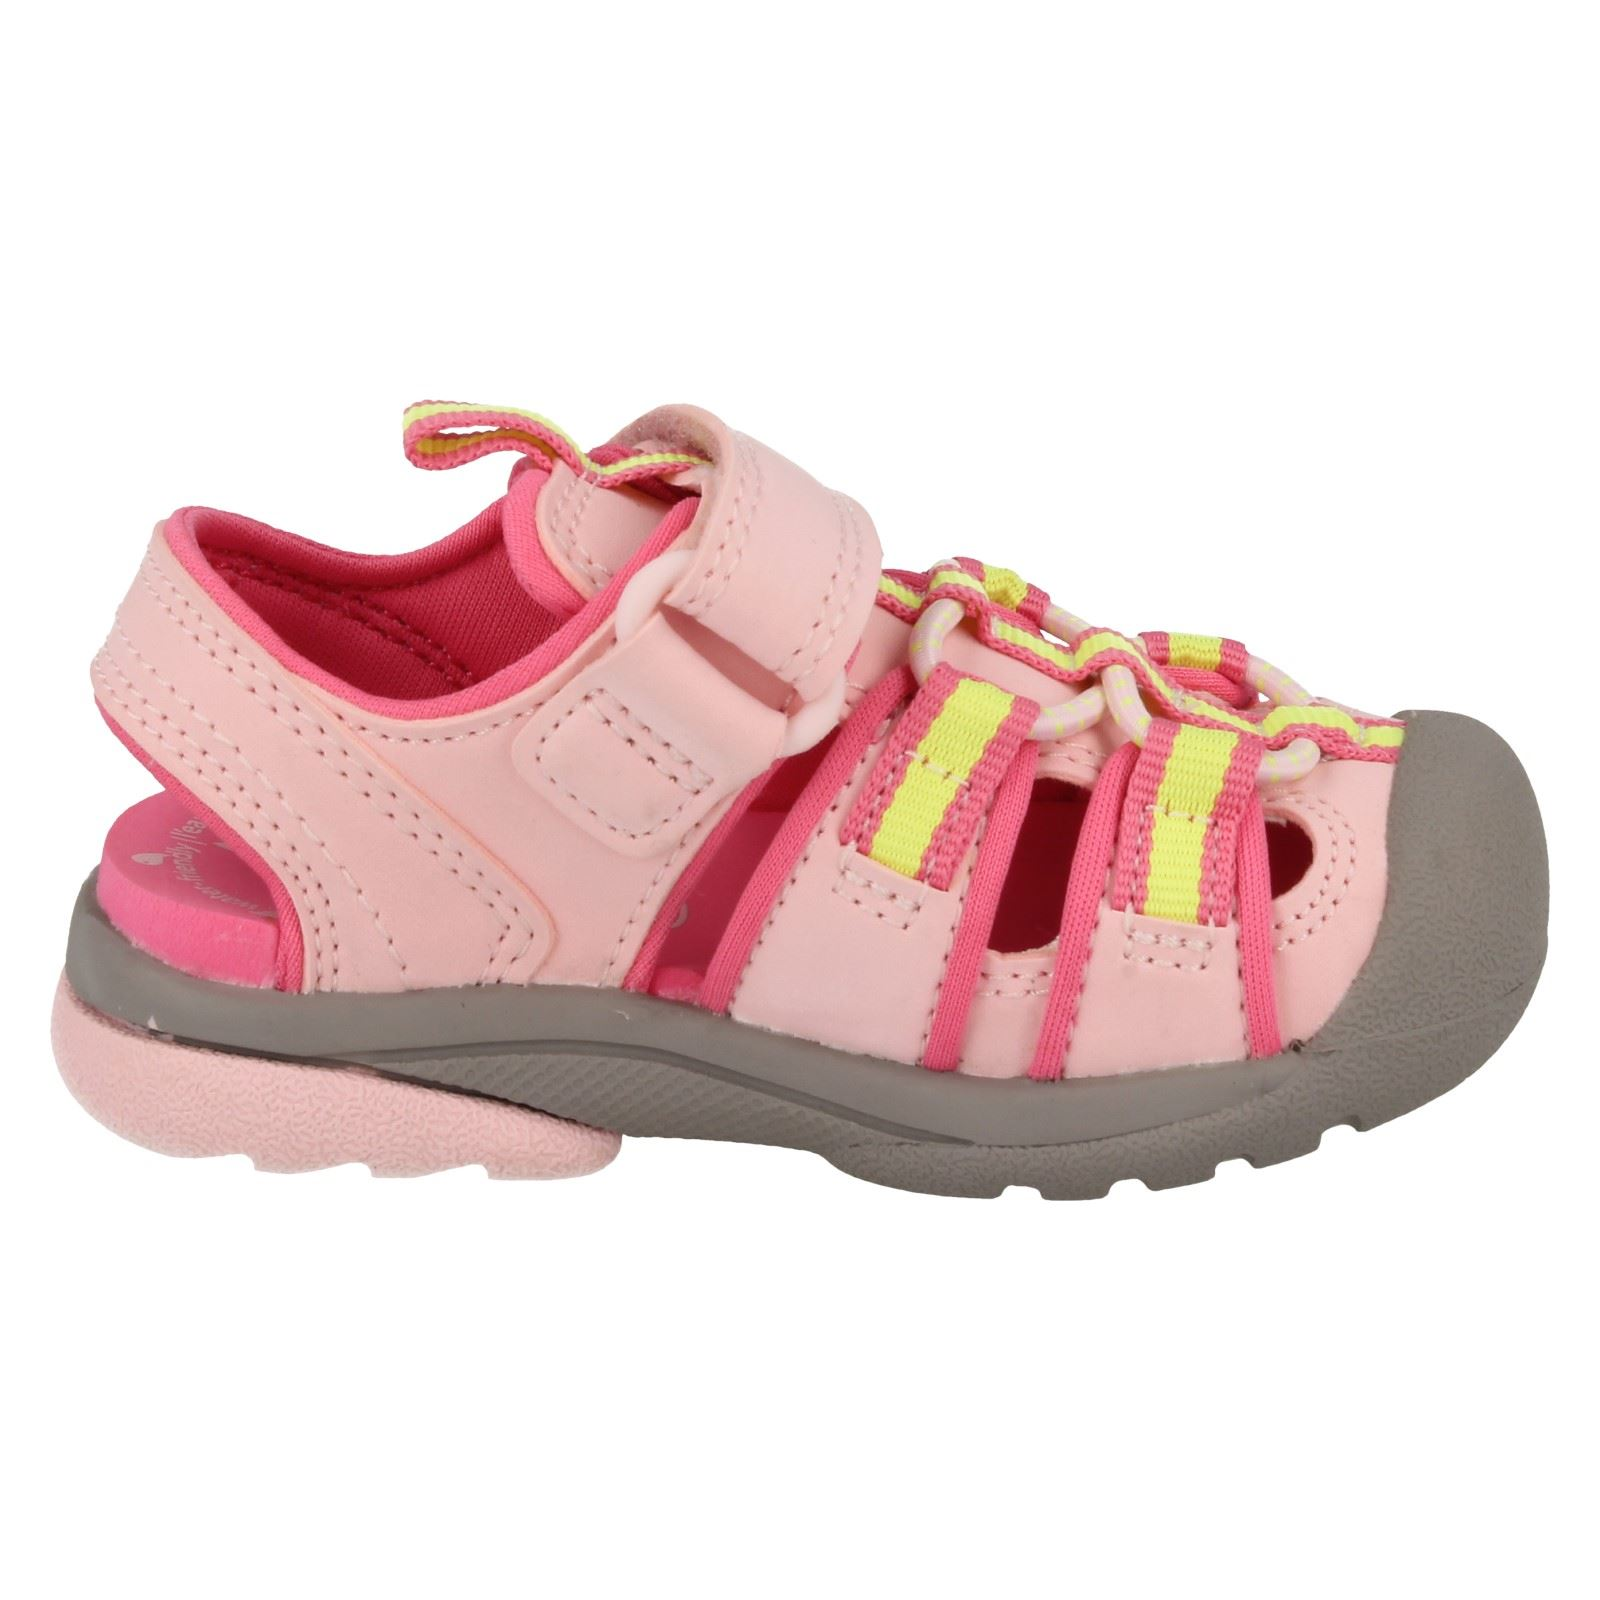 Boys Infant/Junior Clarks' Rounded Closed Toe Sandals - Beach Tide